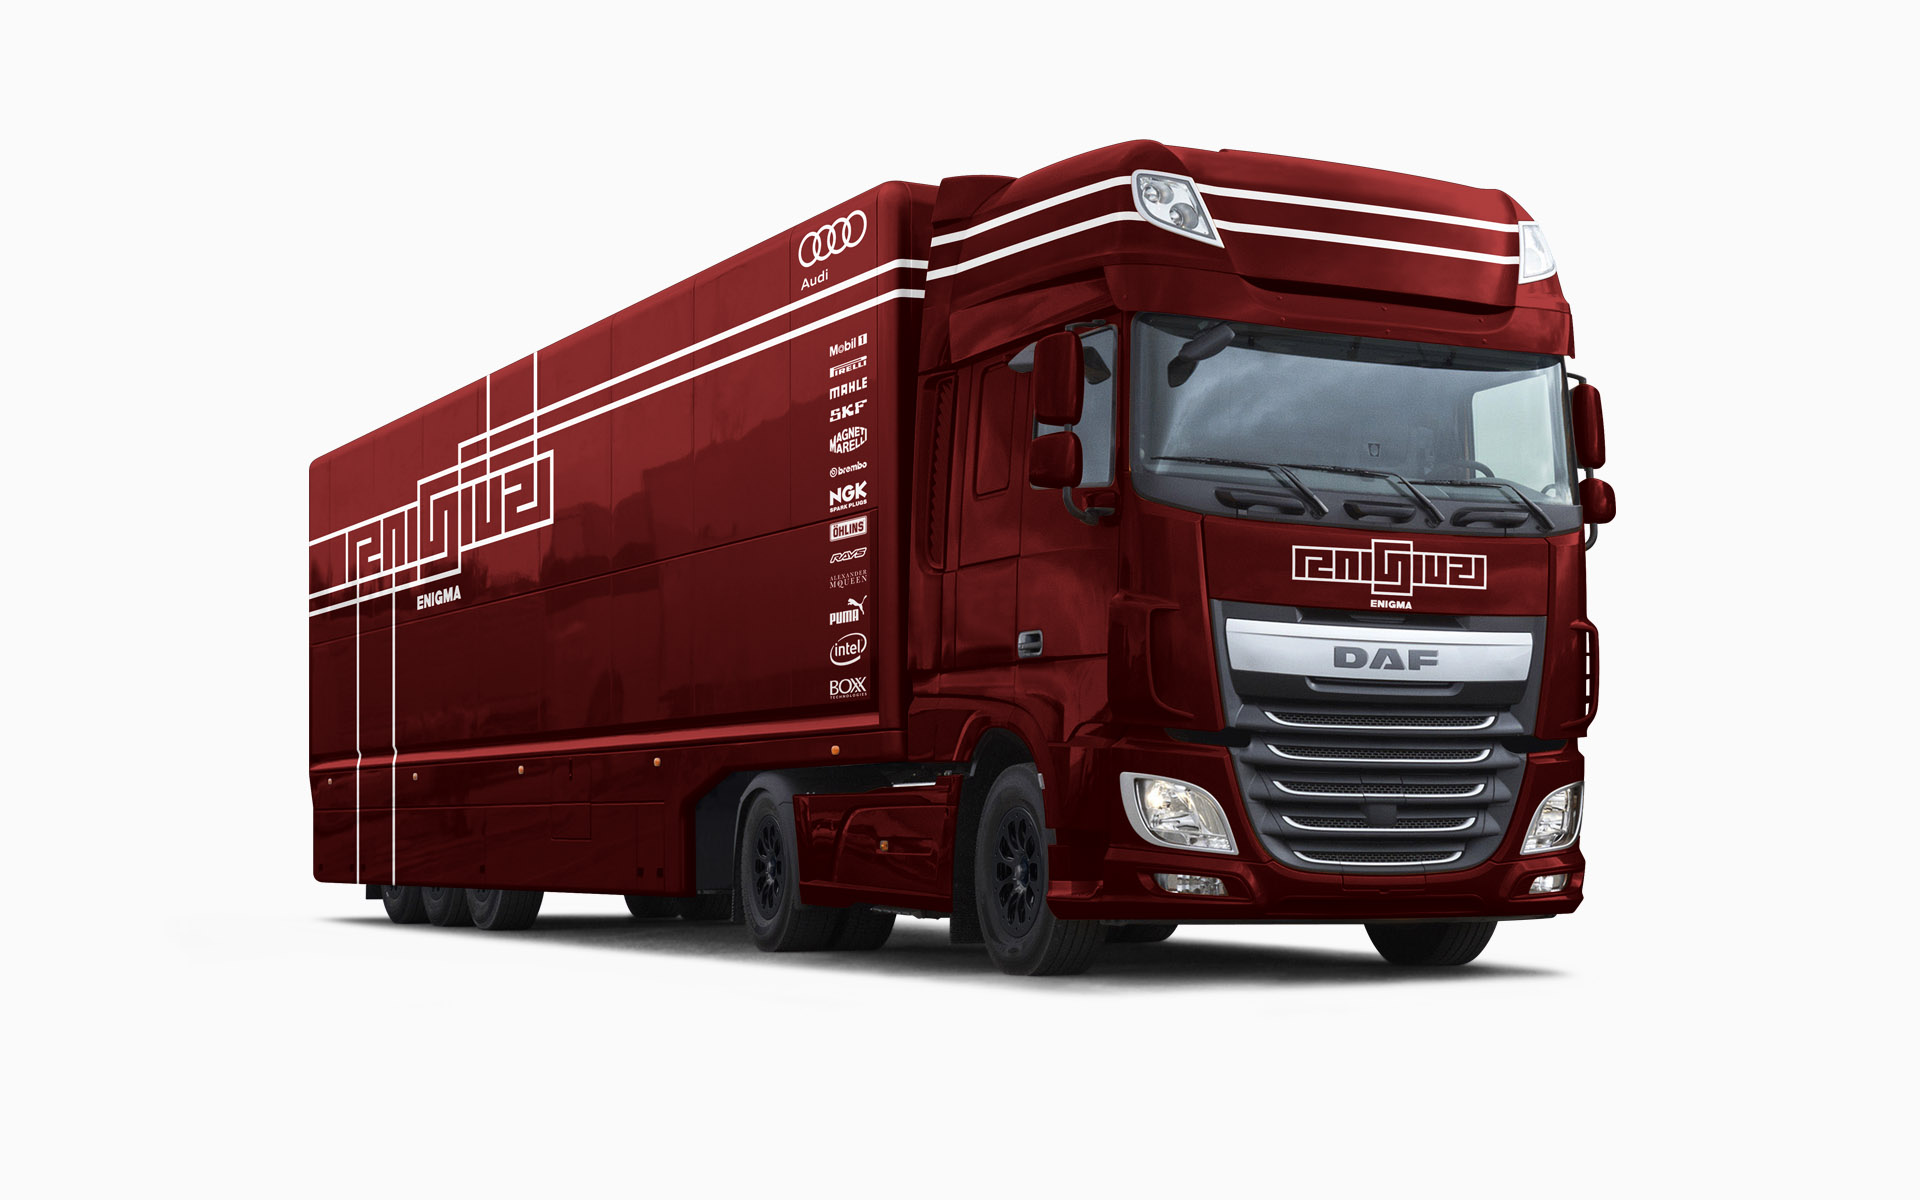 Franklin Estate Vineyards Enigma F1 Transporter Livery Visualization